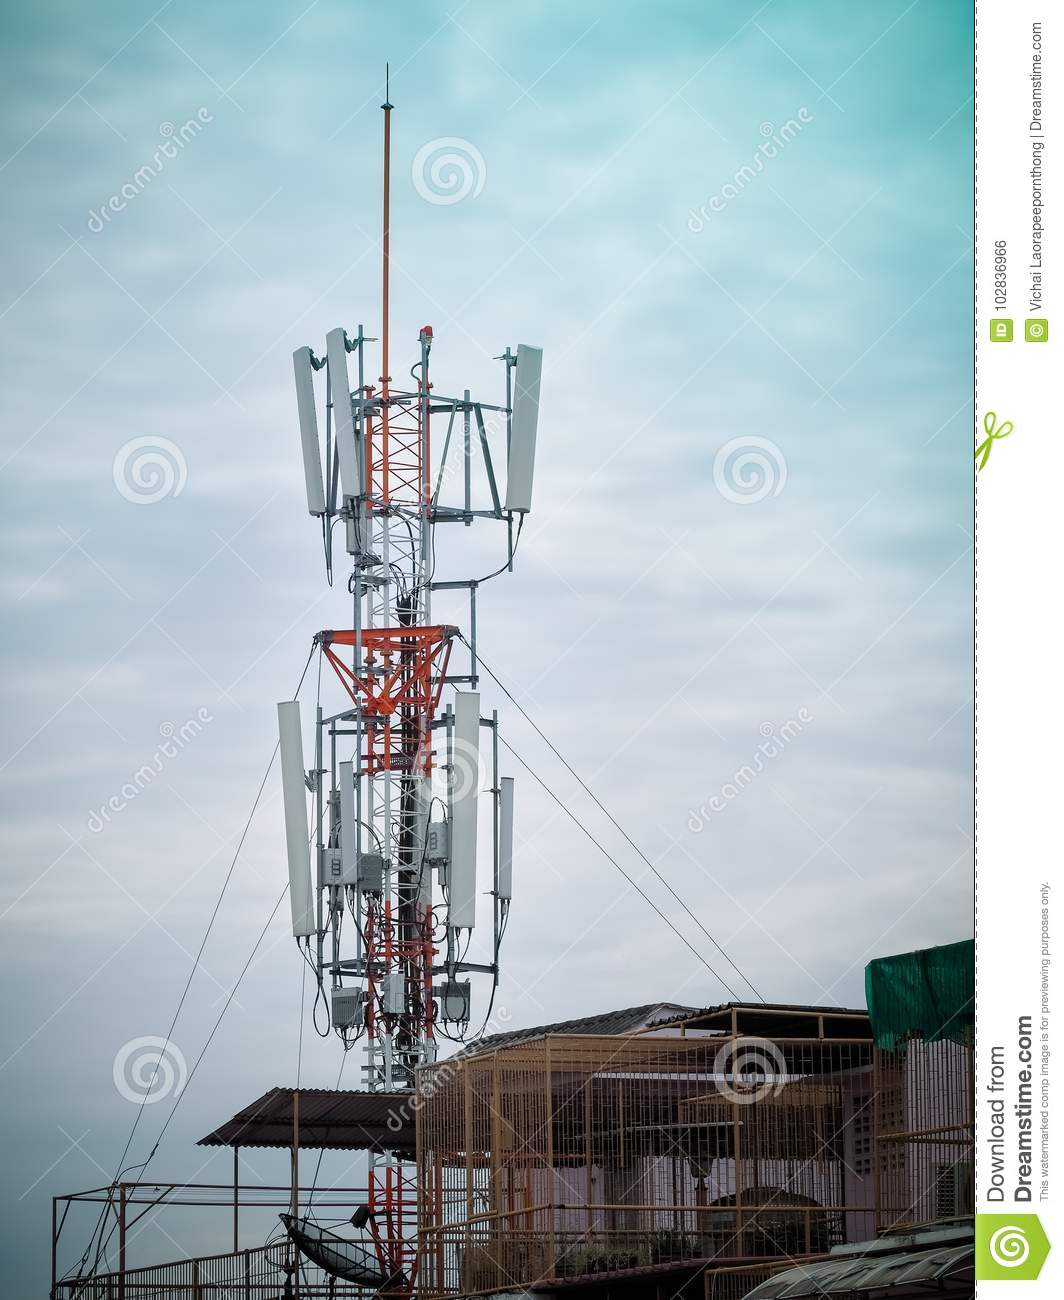 Mobile Phone Towers And 4G System Stock Photo - Image of